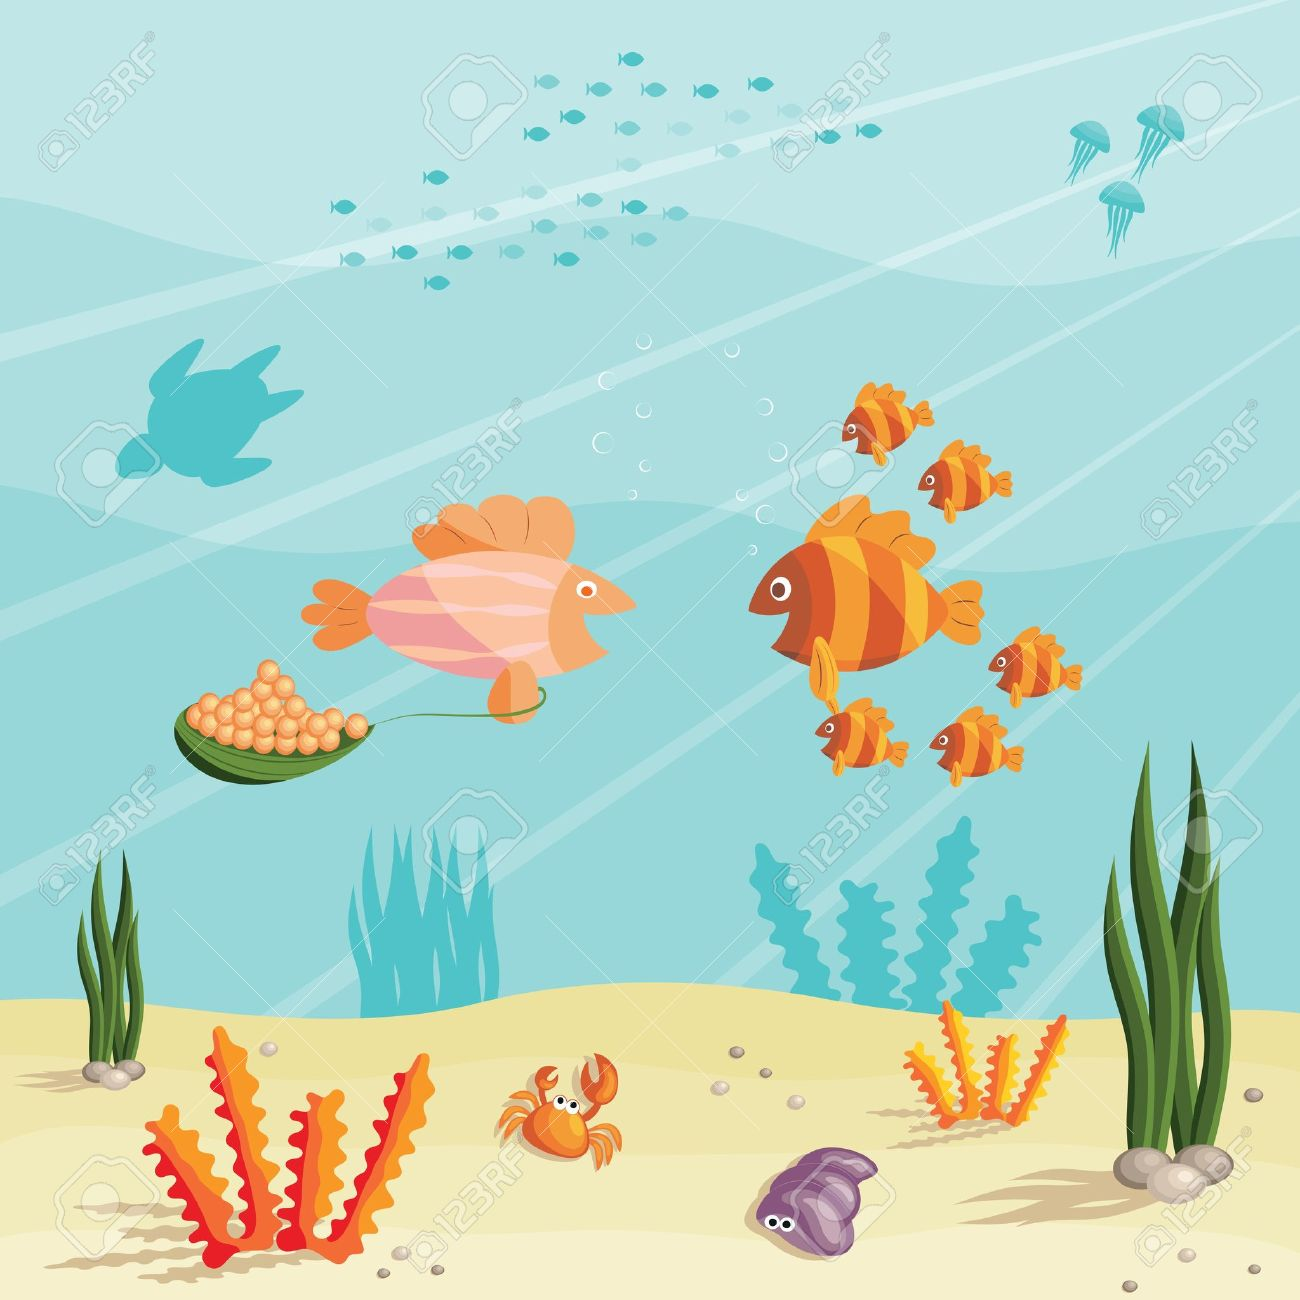 1300x1300 Illustration Of An Underwater Ocean Scene With Small Cartoon